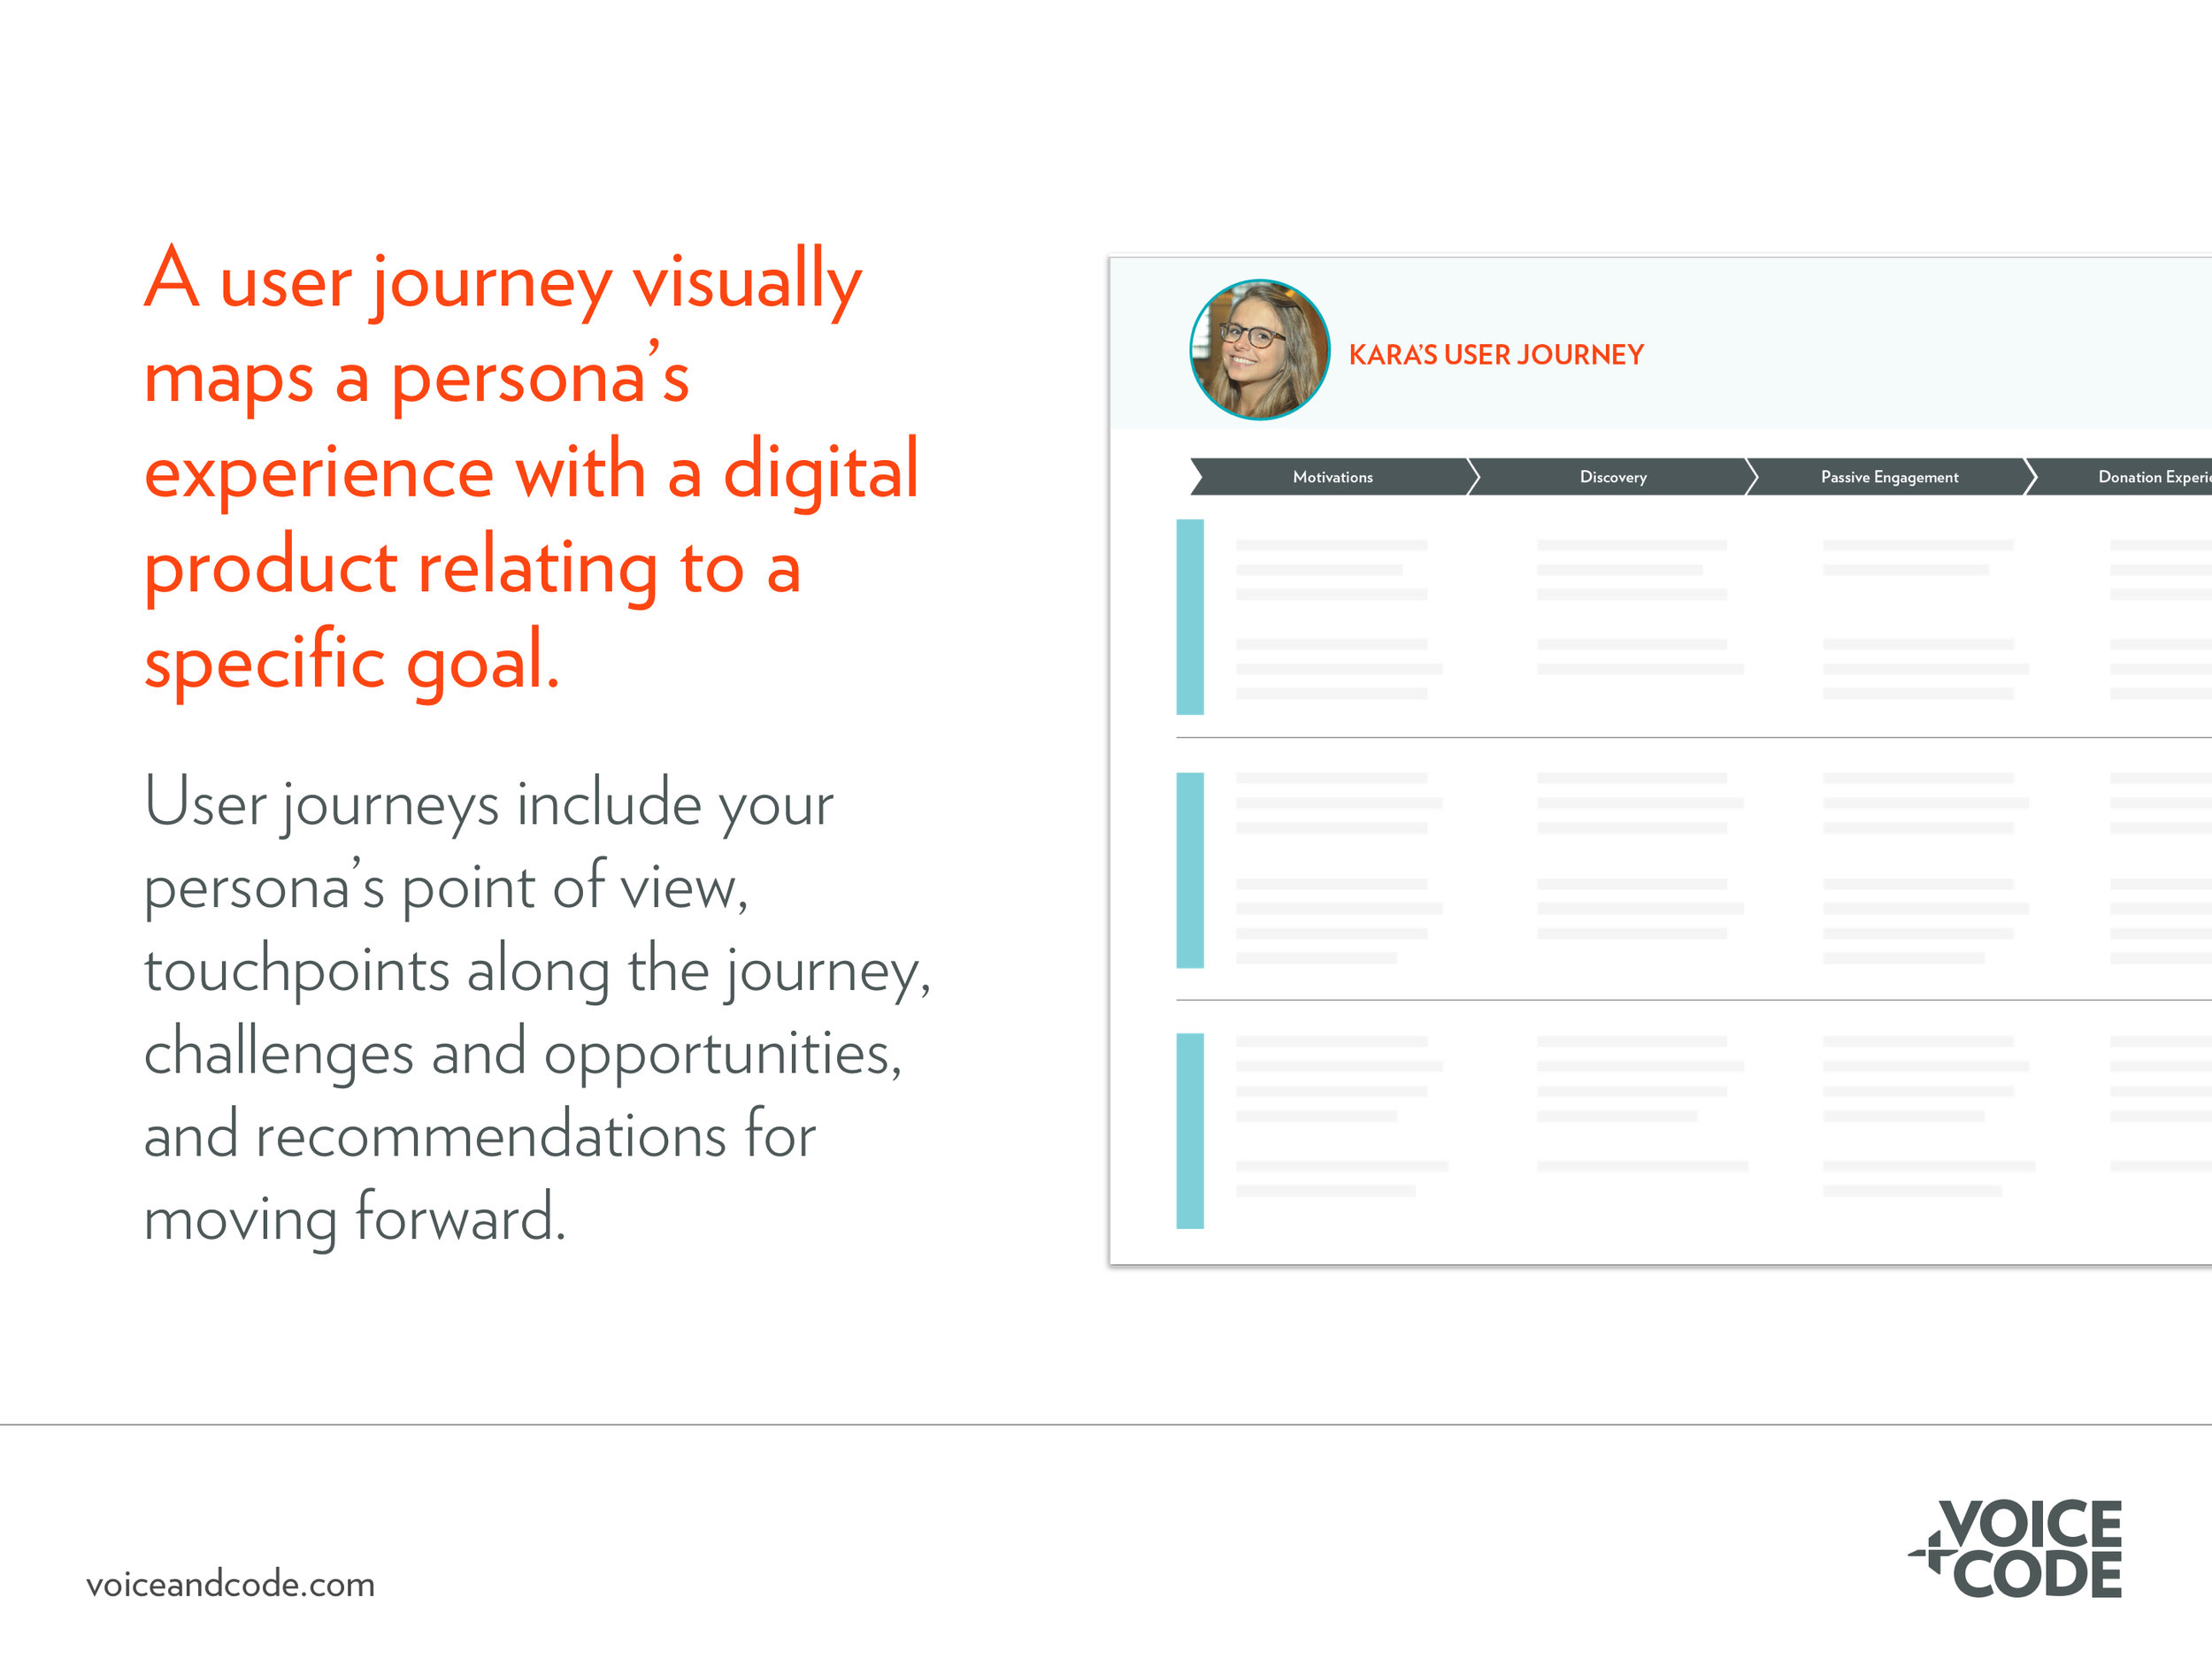 What is a user journey?